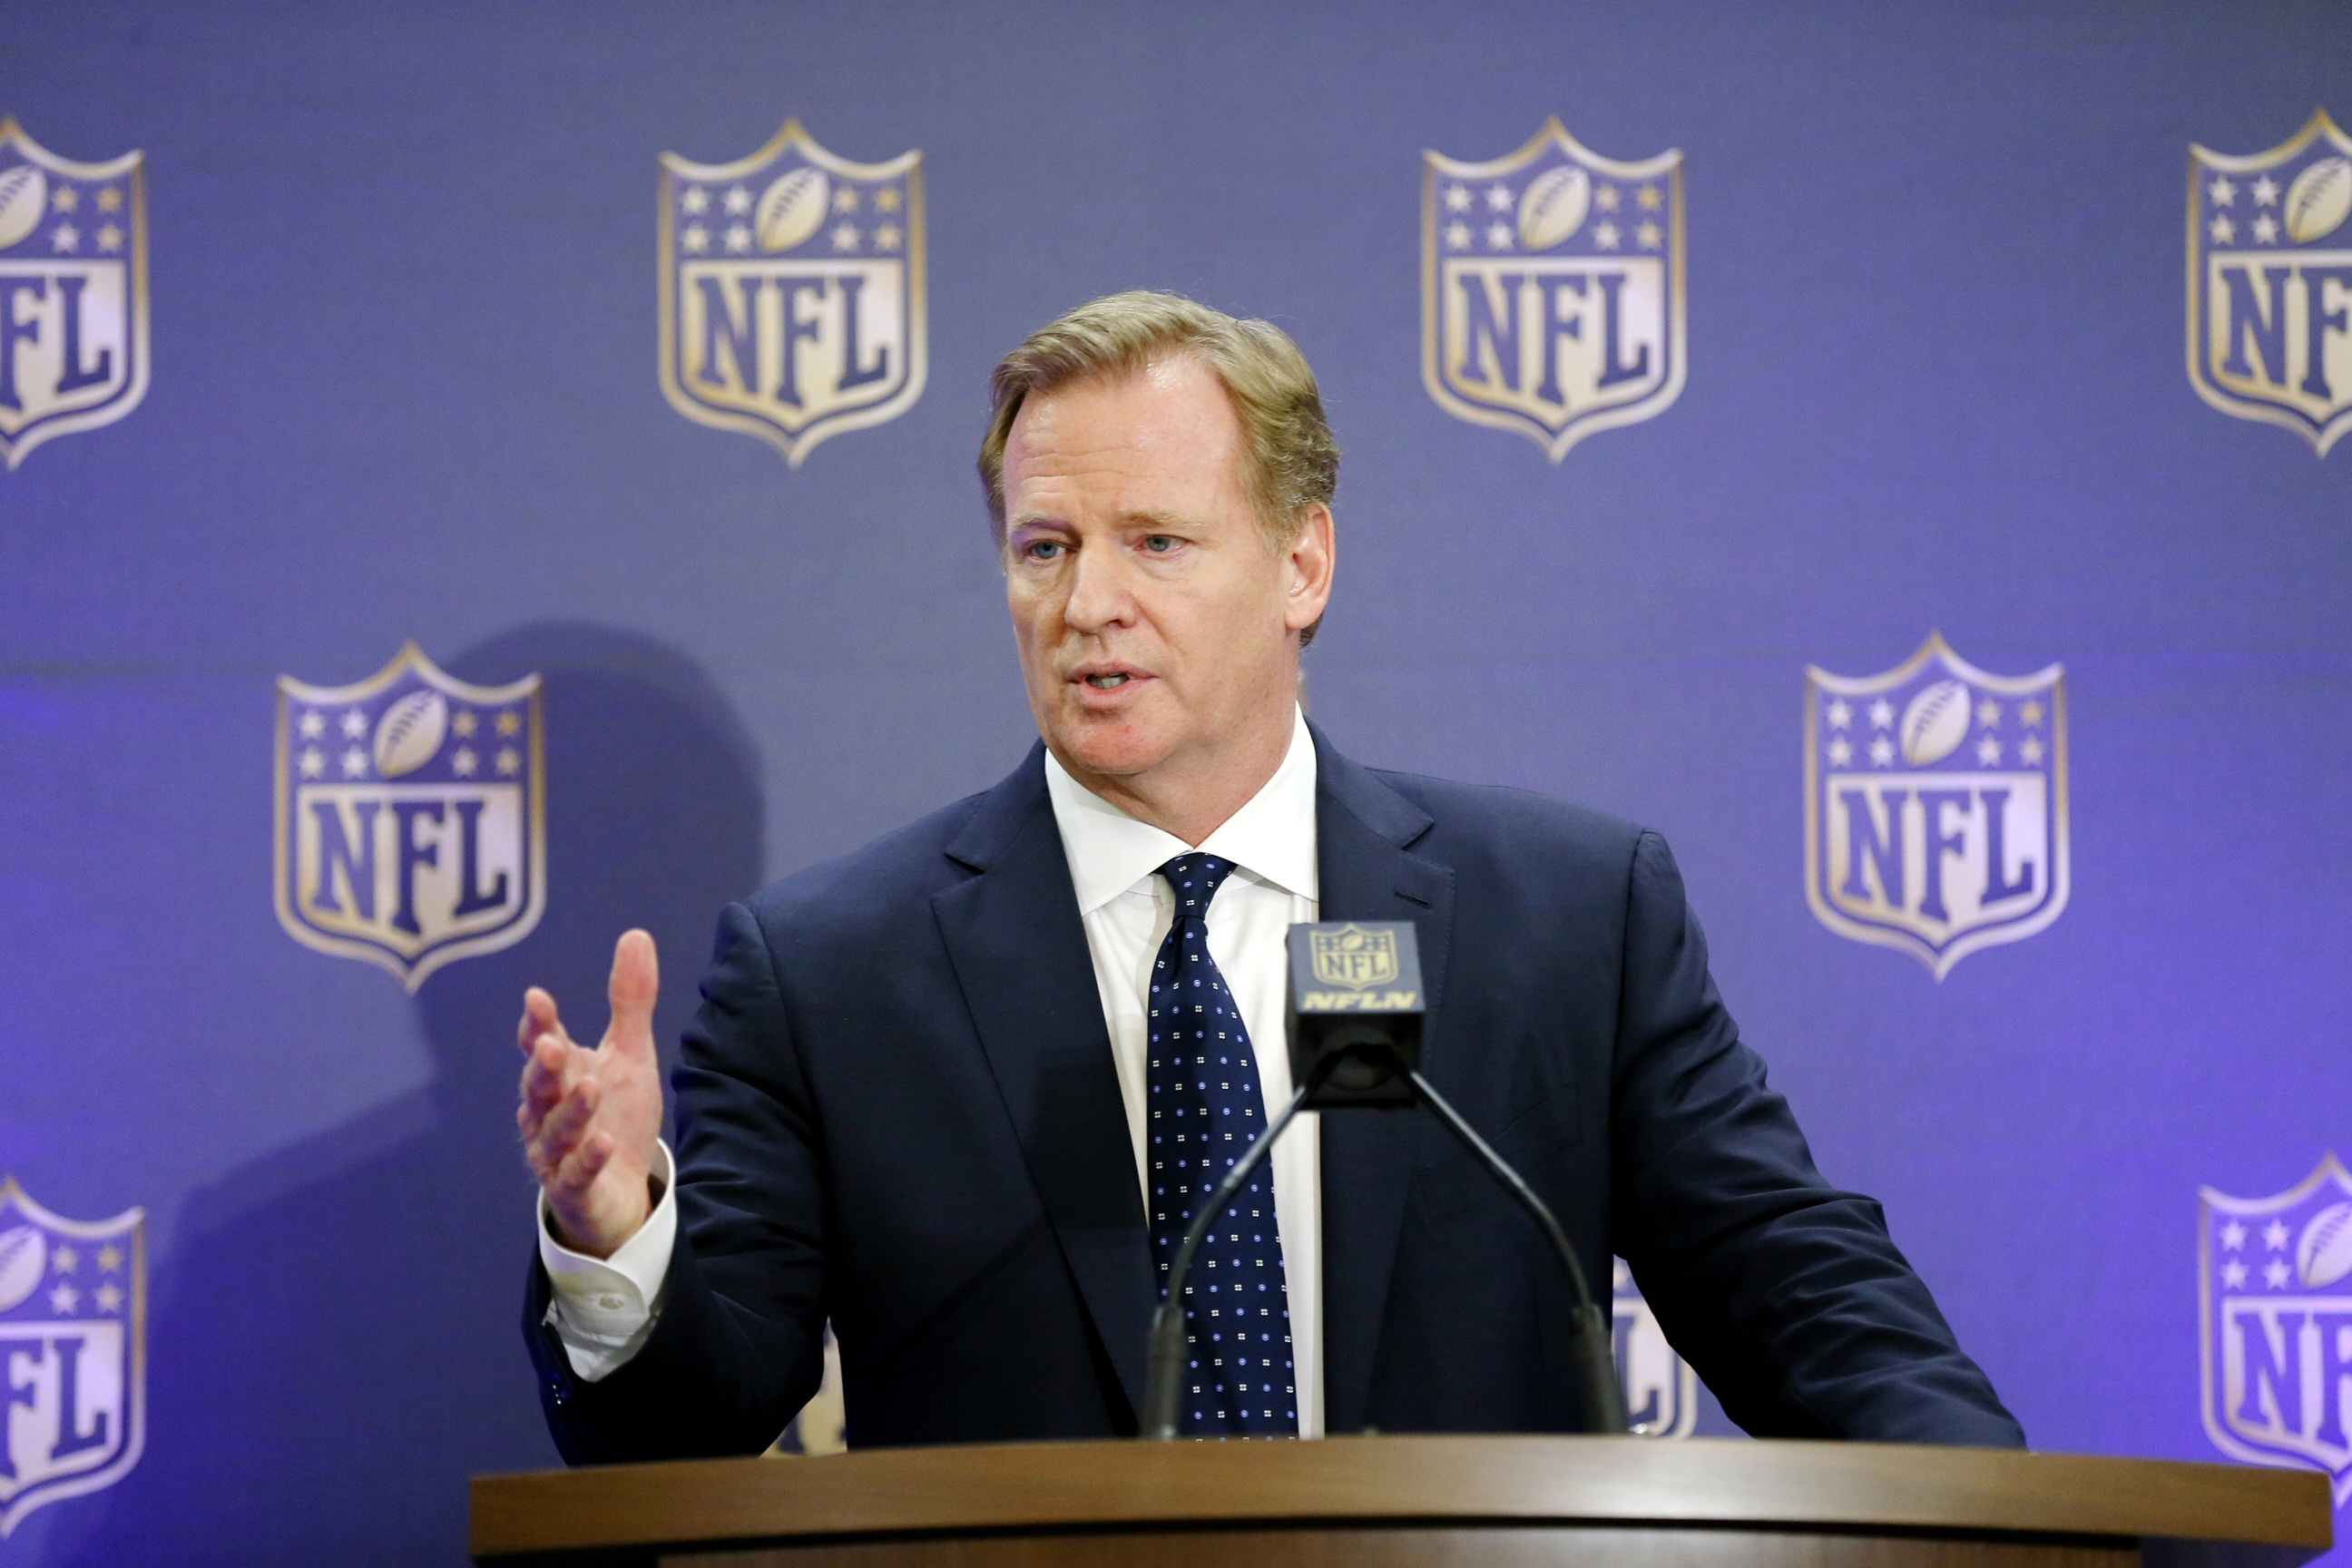 NFL Chief Goodell Says League Conducting 'Thorough' Investigation Into Patriots